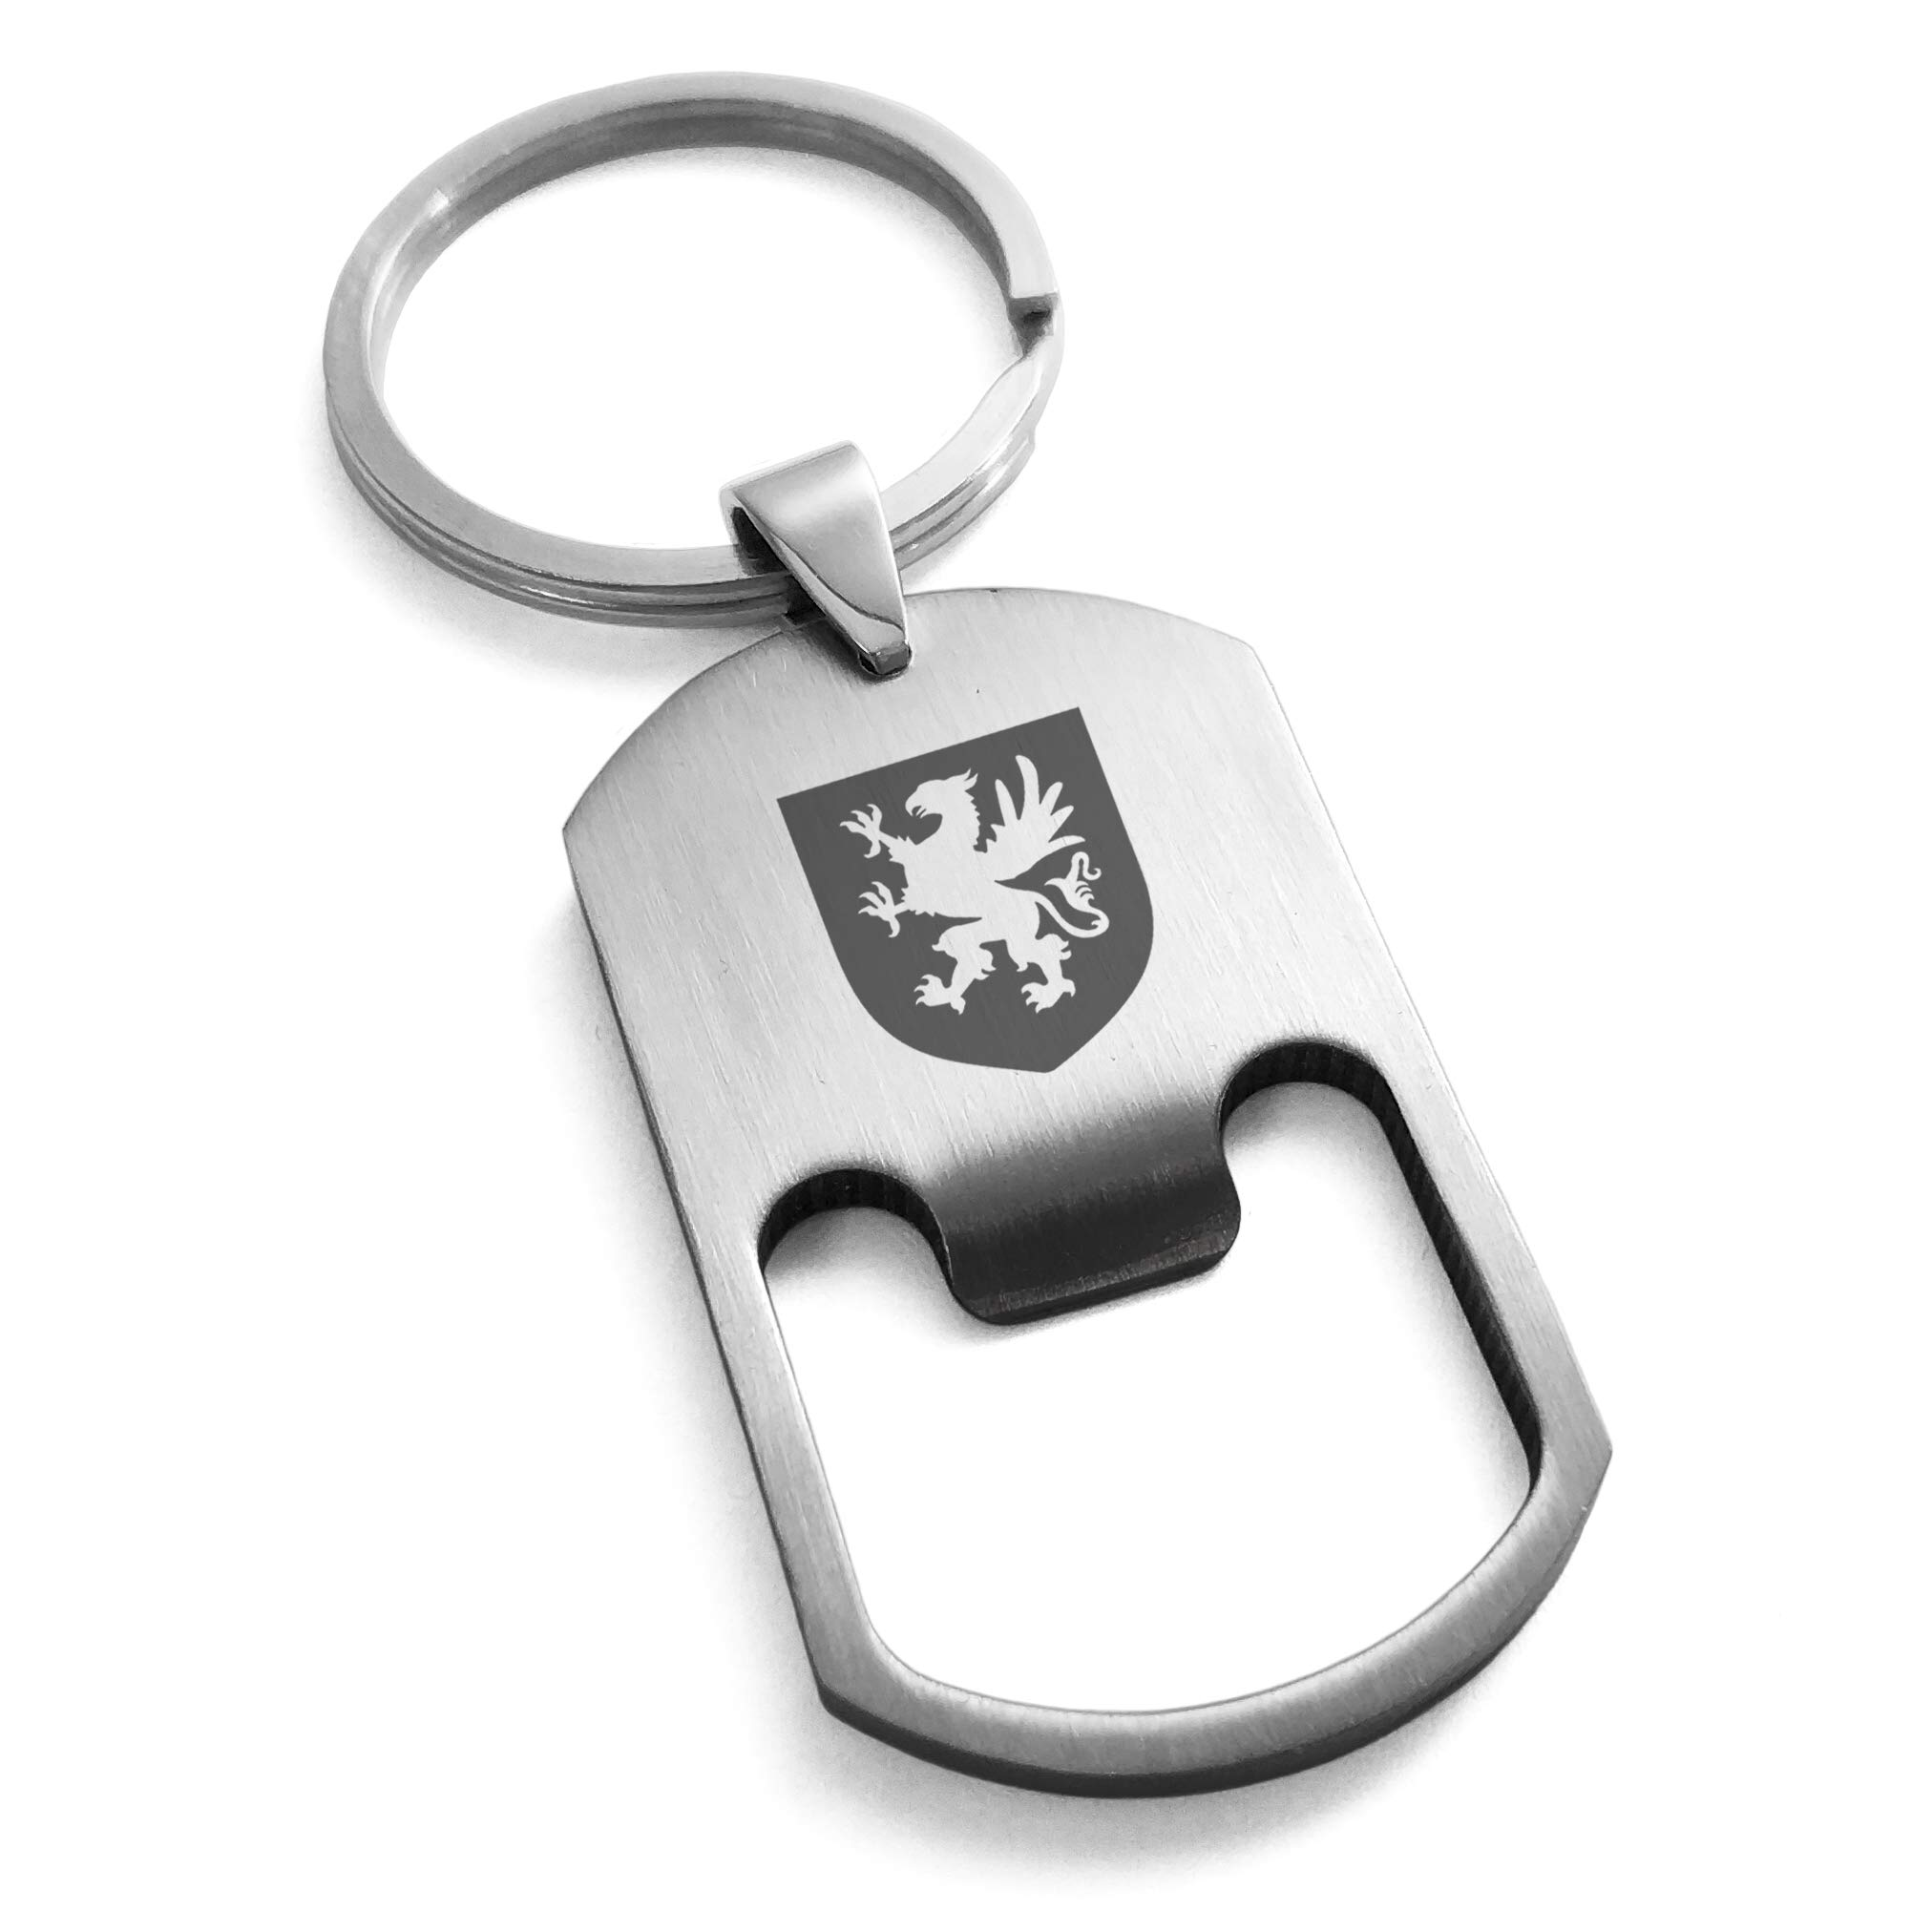 Tioneer Stainless Steel Griffin Valor Coat Arms Shield Engraved Bottle Opener Dog Tag Keychain Keyring